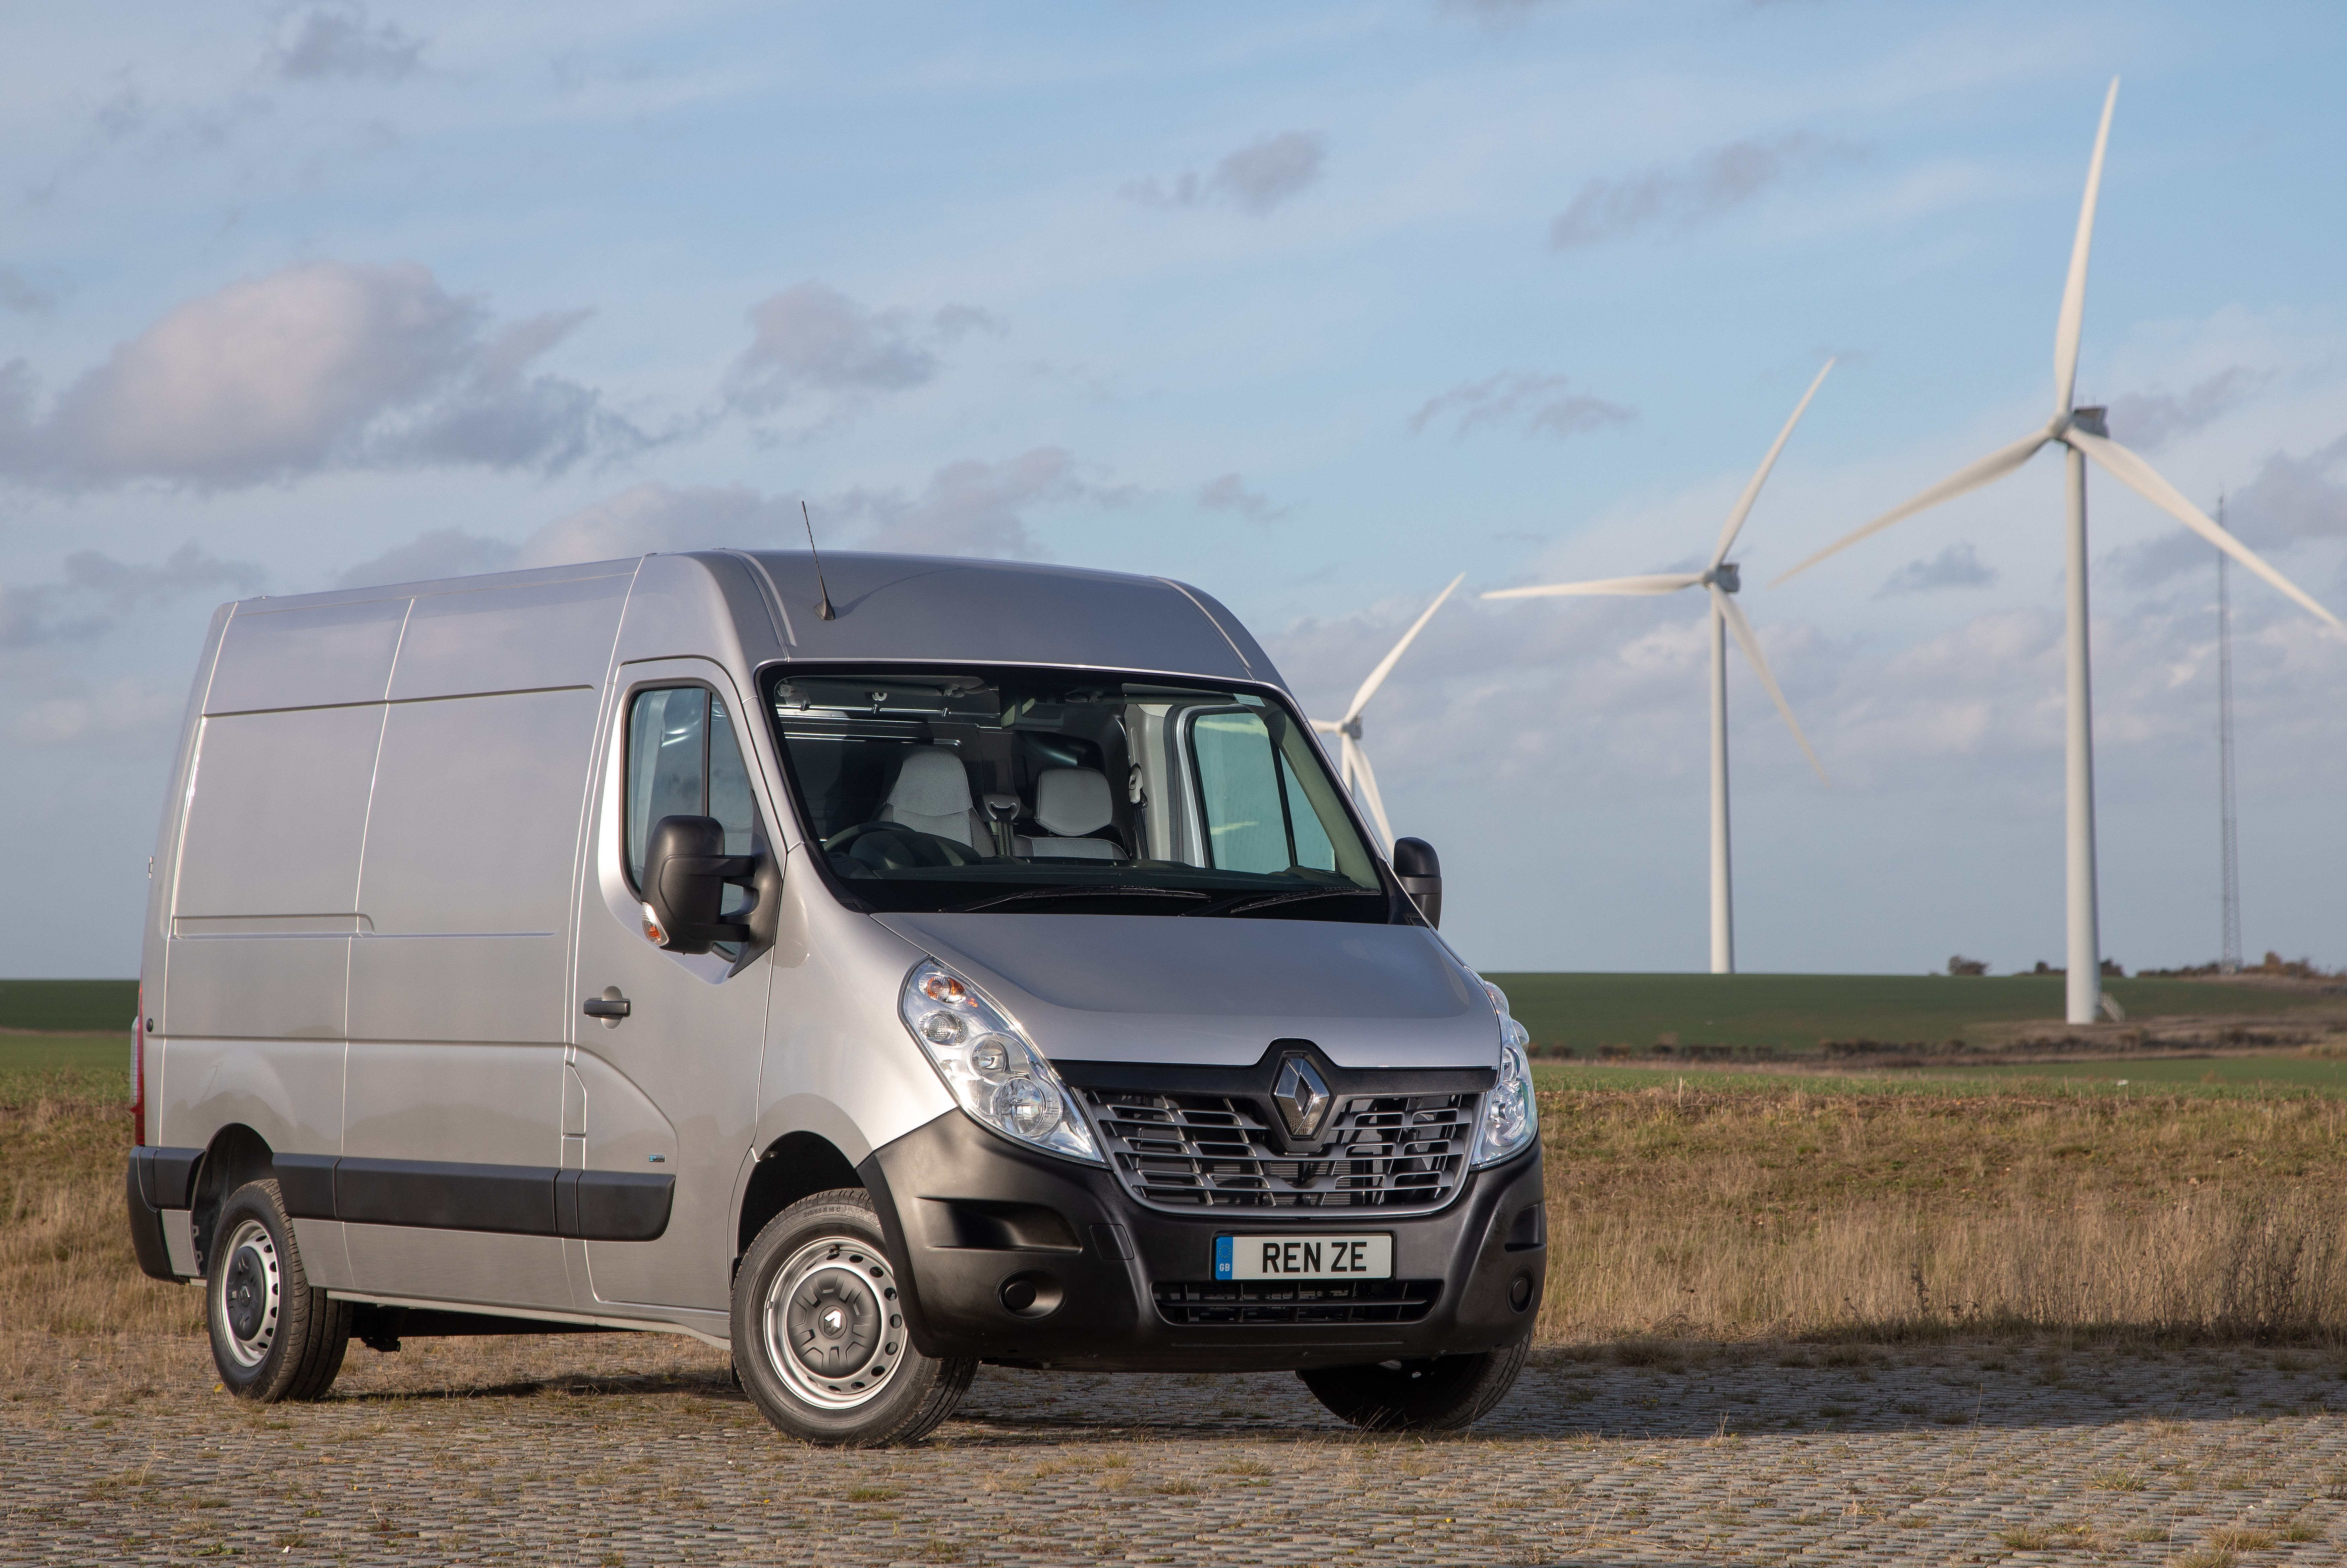 30da3249ae Renault has announced pricing alongside the detailed specs of its fully  electric Master Z.E. commercial van series. The updates are sure to spark  interest ...